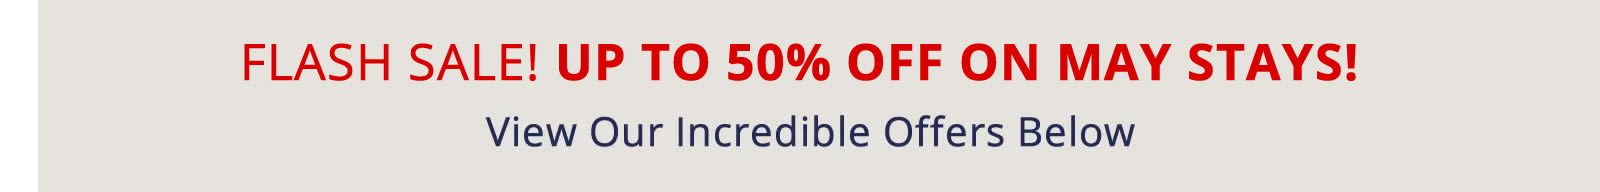 FLASH SALE! UP TO 50% OFF ON MAY STAYS!